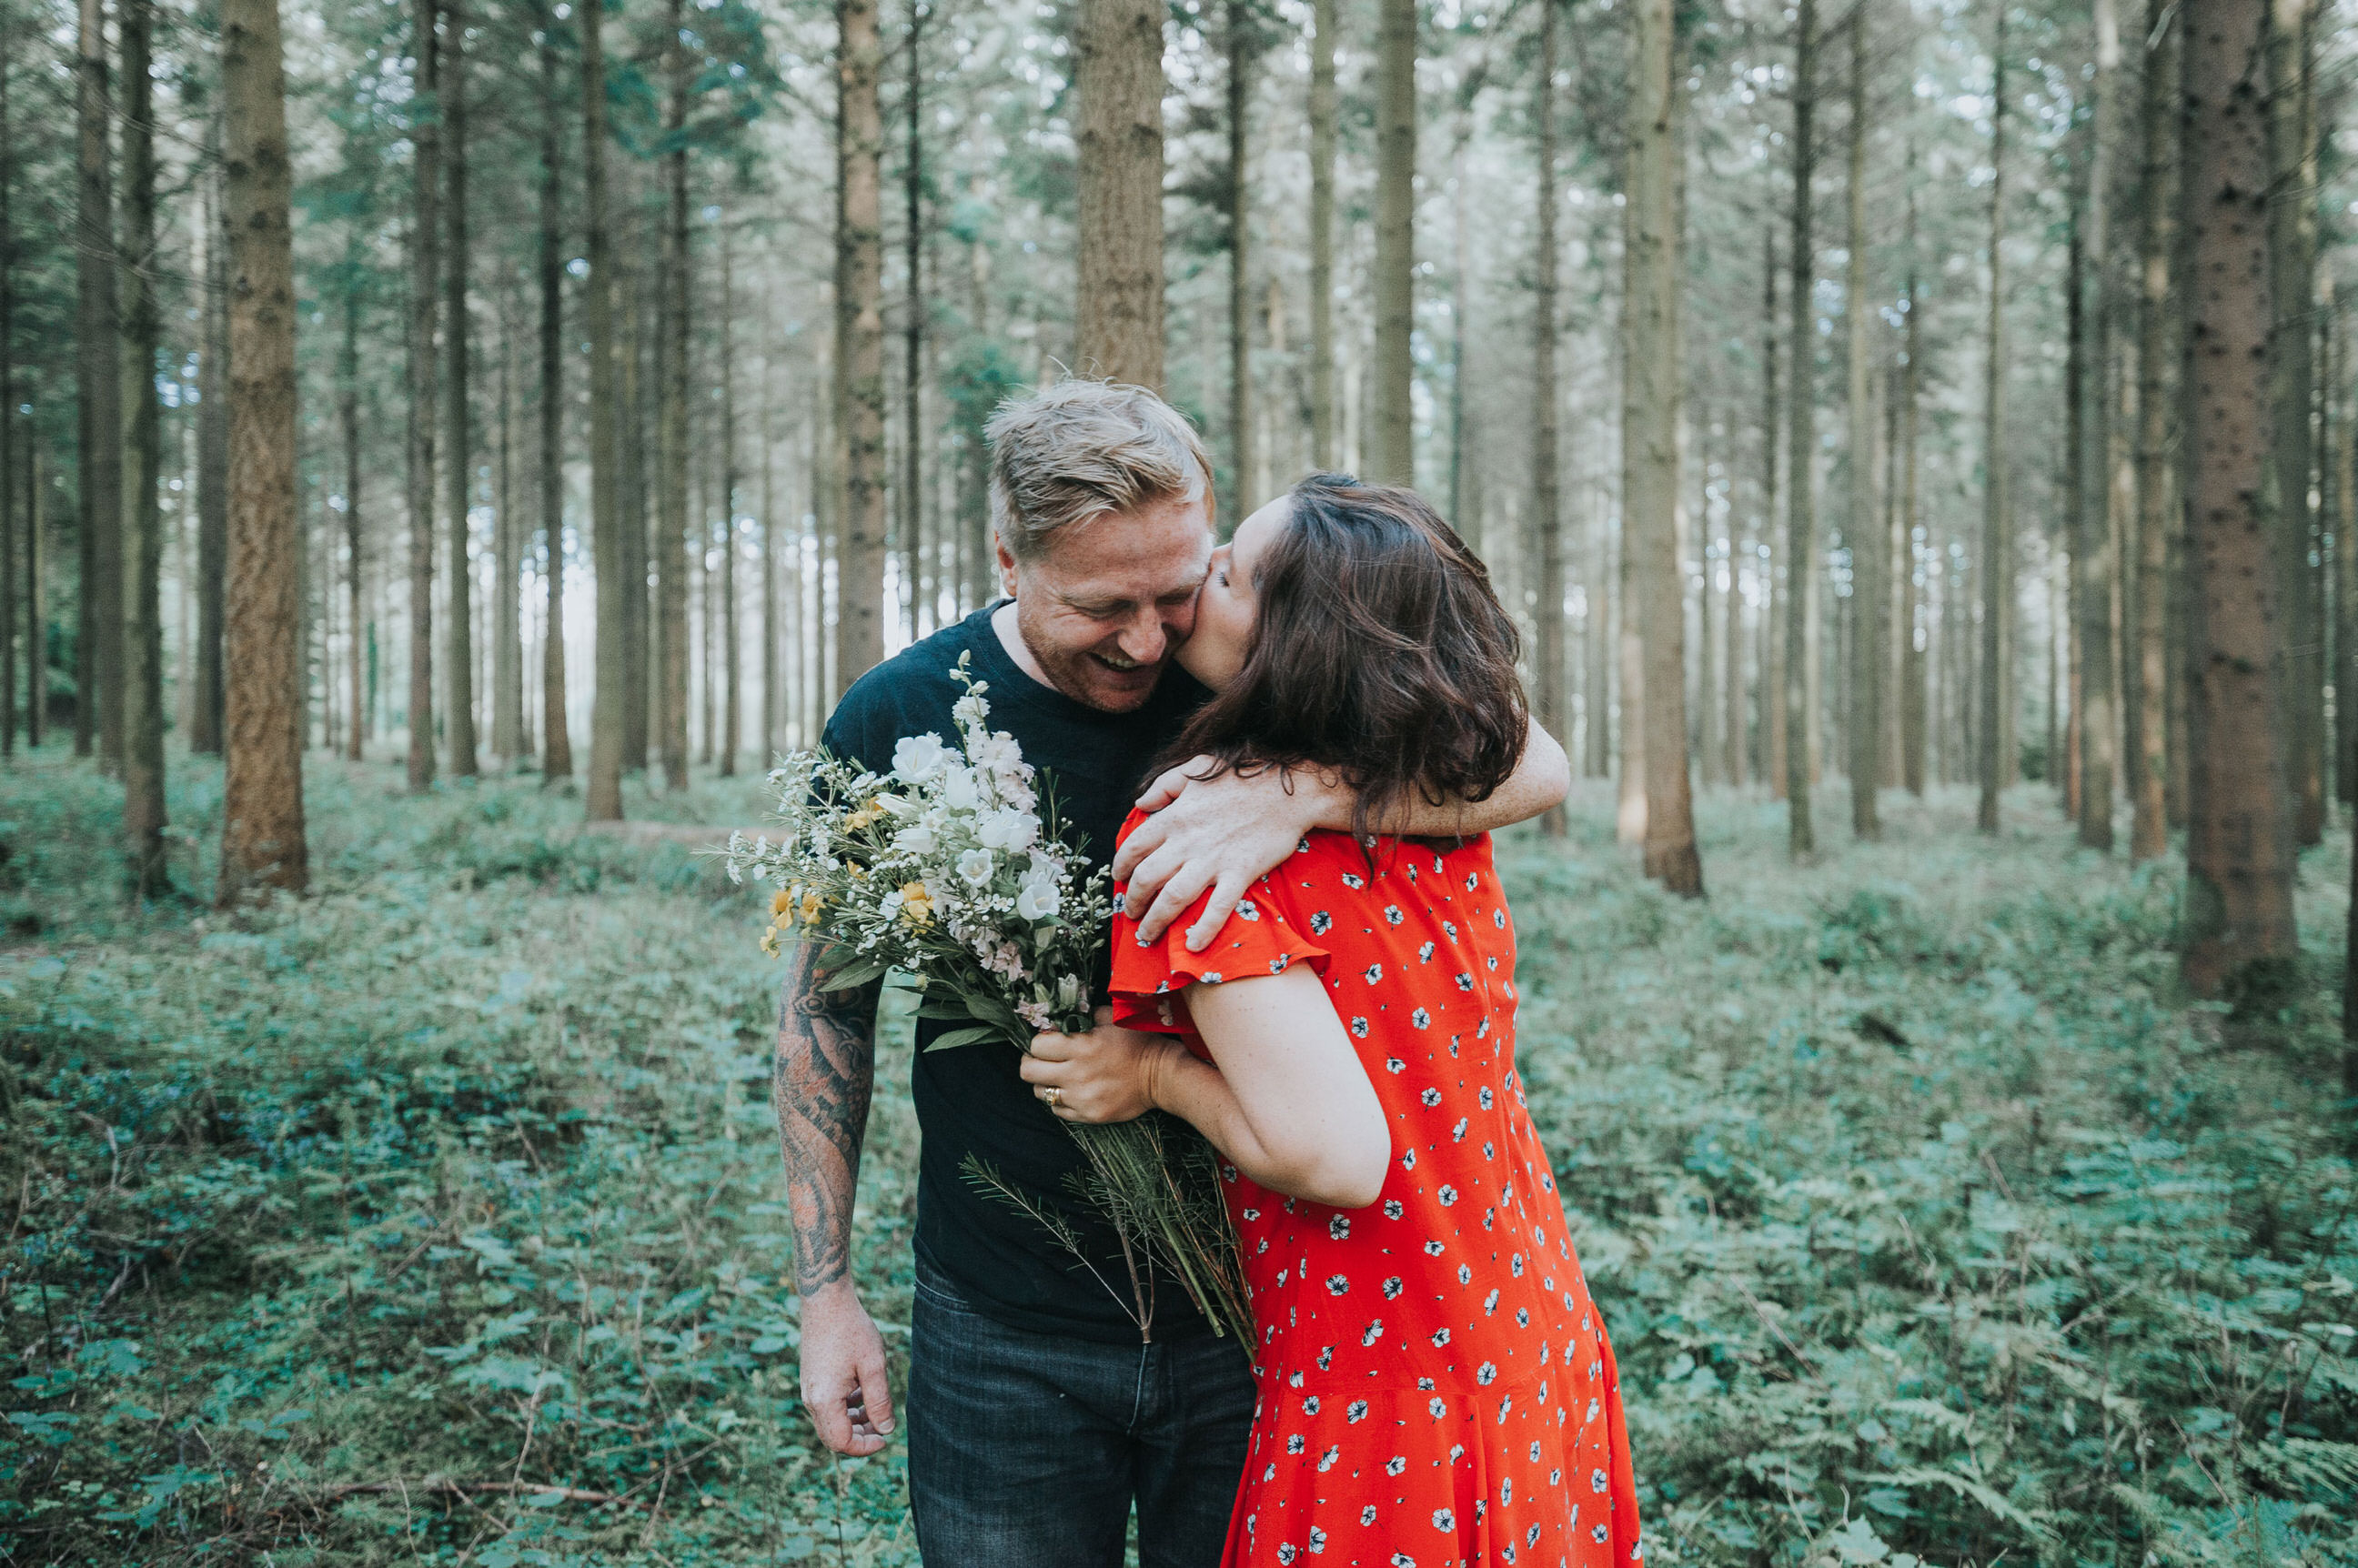 Husband and wife share a cuddle in the woods